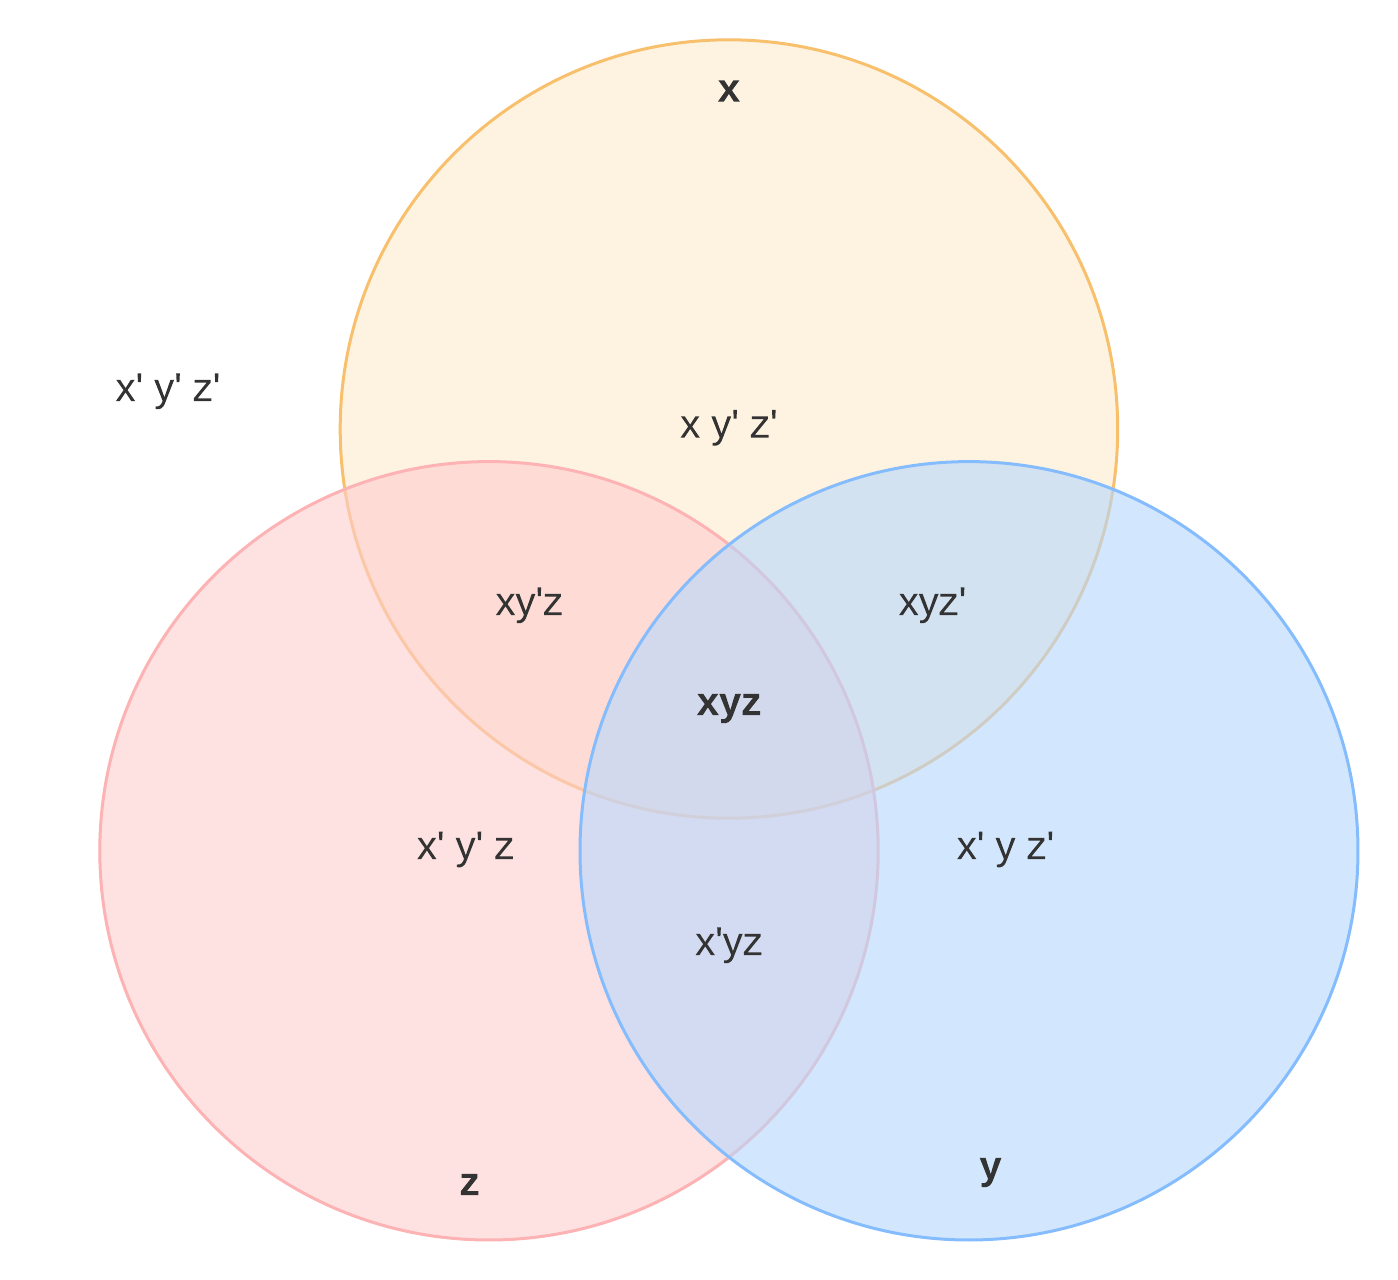 33 Venn Diagram Examples With Solutions